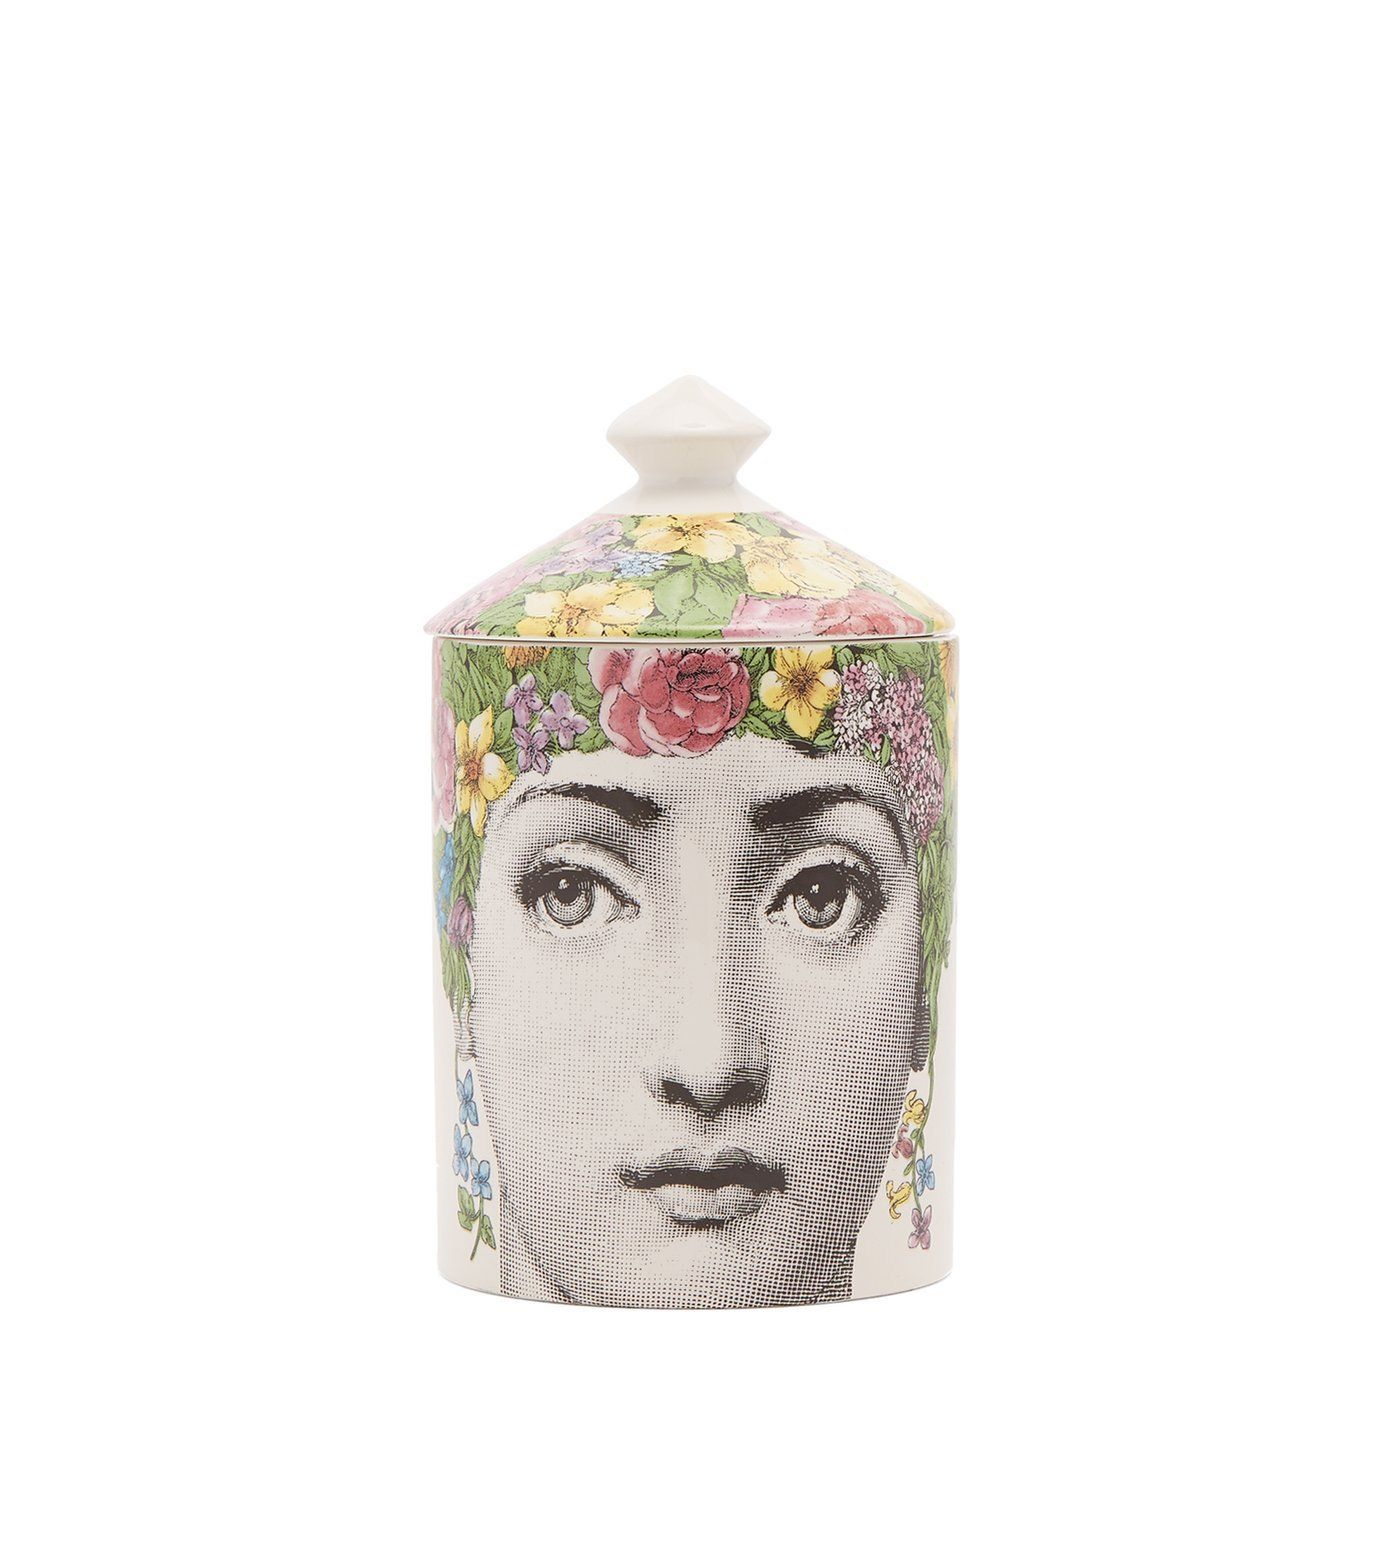 Boho Chic Gift Ideas 2018  Bohemian Style Decor, Art is part of Bohemian Home Accessories Ideas - We all have that one friend whose style errs on the side of the eclectic  Don't know what to get them this holiday season  We set out to find the best boho chic gift ideas every freespiritedenthusiast will absolutely love  See for yourself